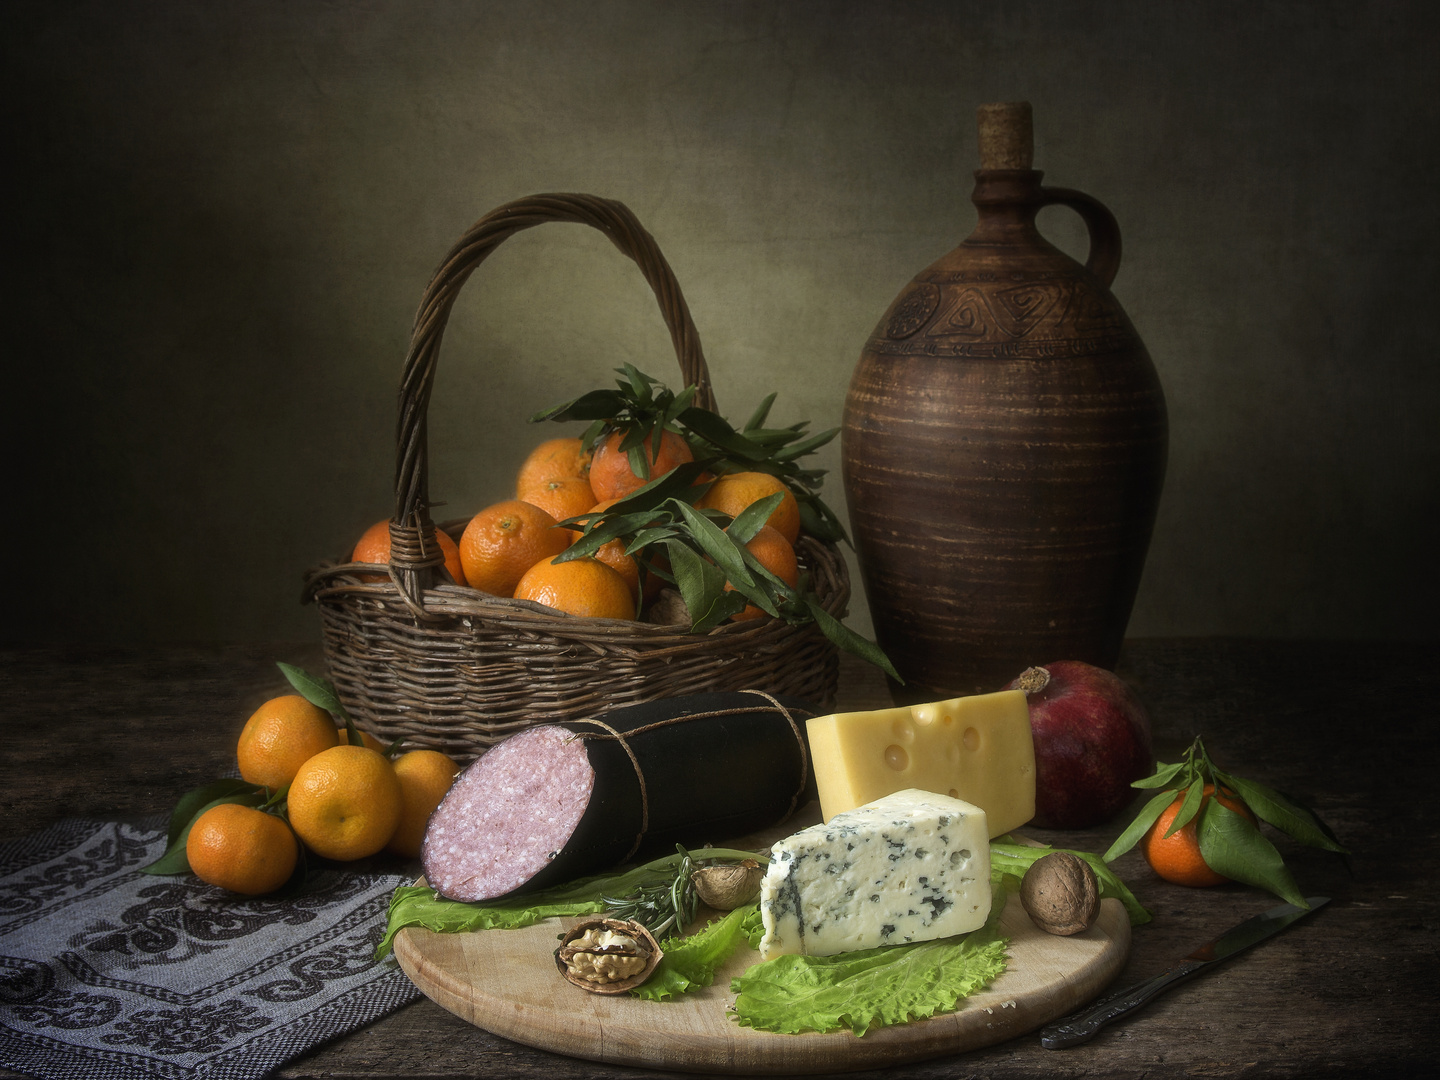 Still Life with Delicacies